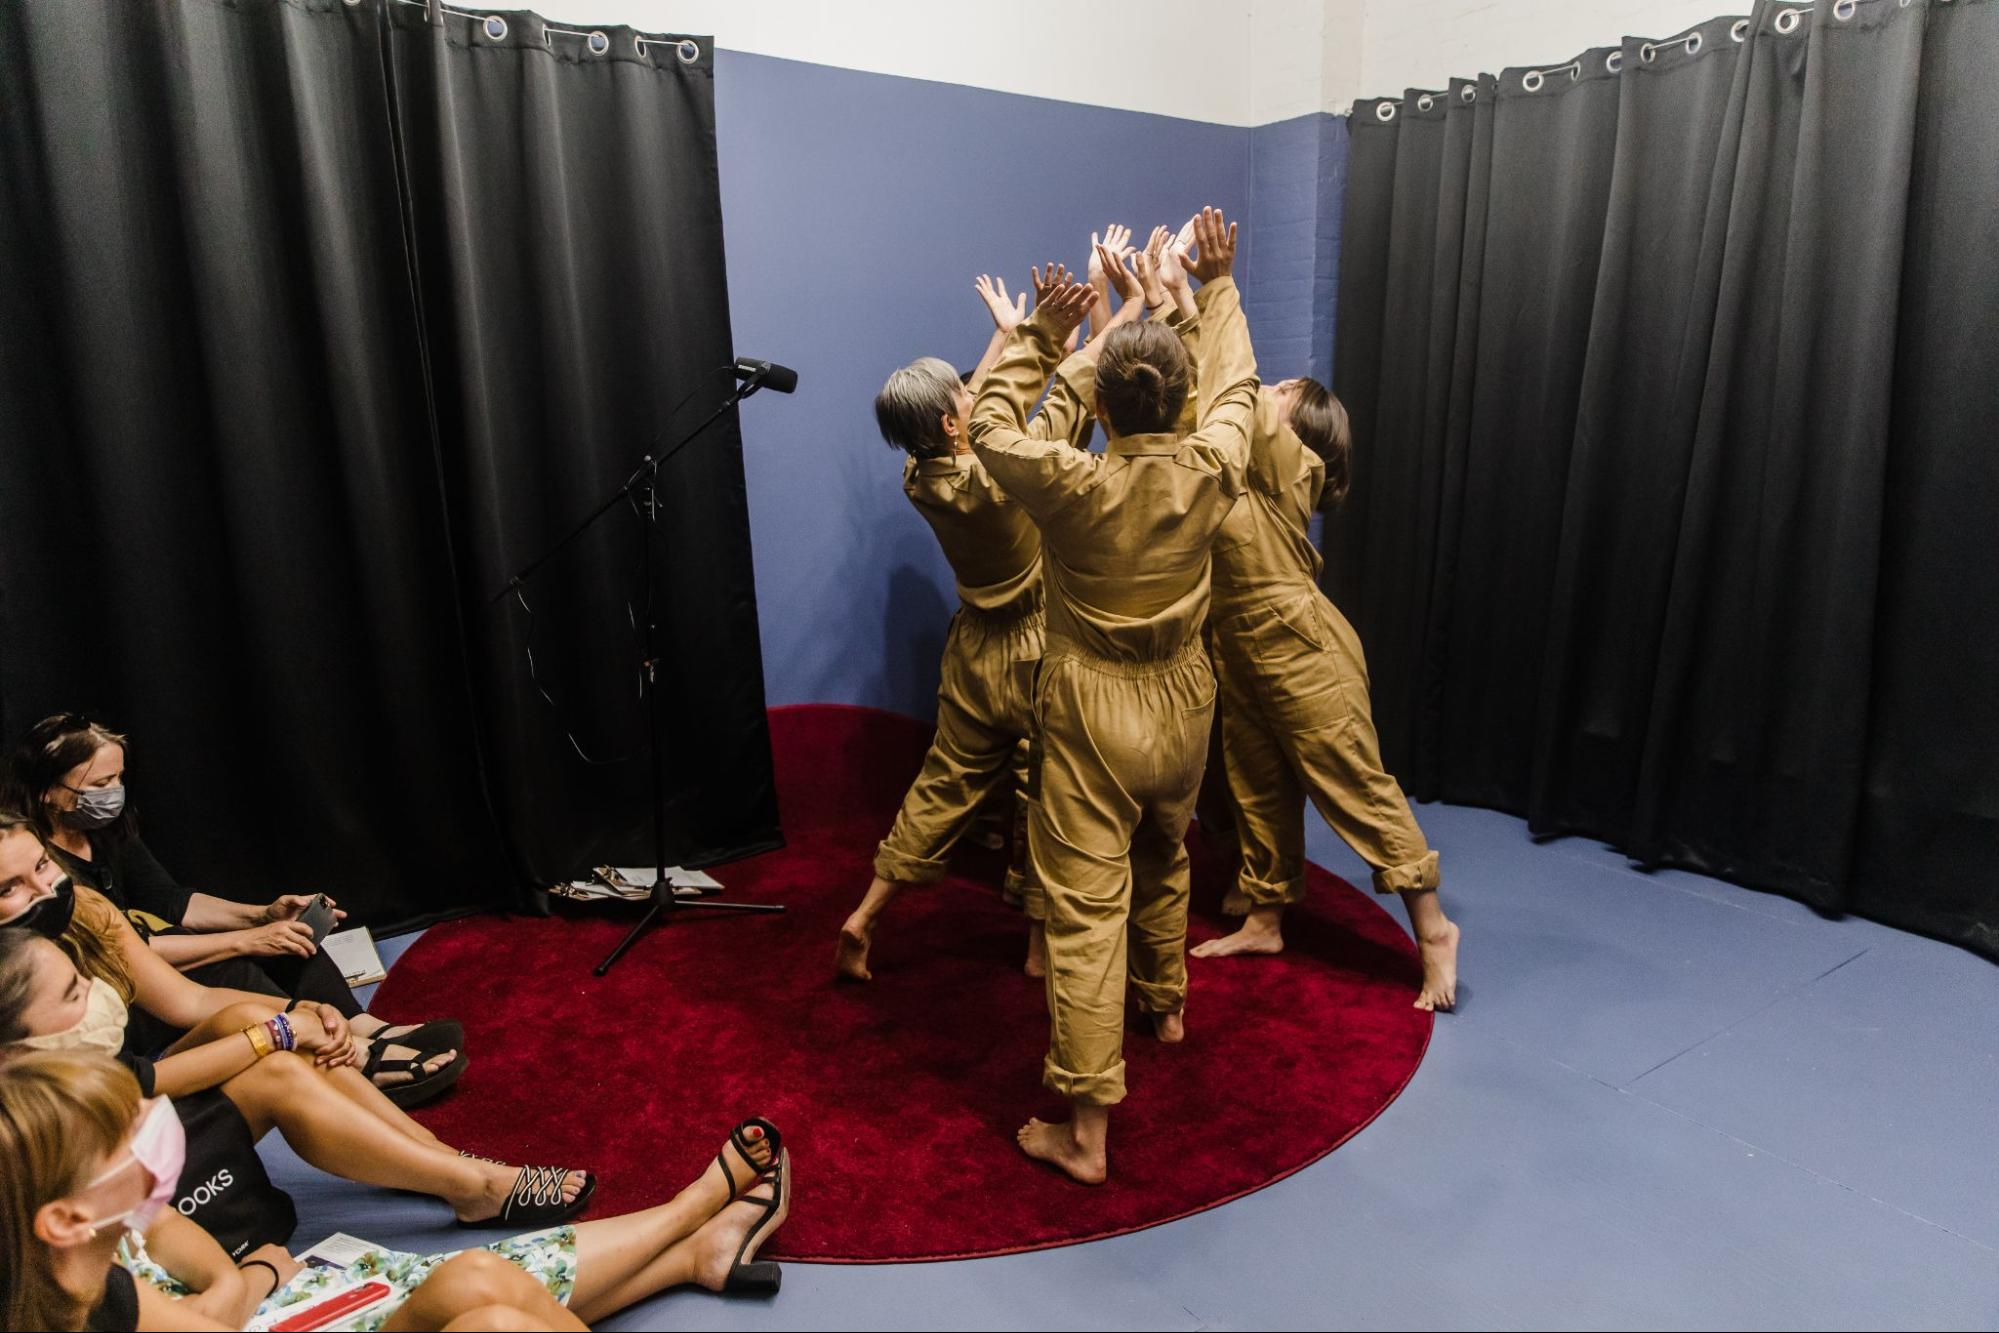 A group of five women in tan jumpsuits and bare feet face away from the camera and raise their hands together in a tight circle. A black microphone on a stand points towards them. The room is painted periwinkle blue with black curtains flanking the women and a circular maroon rug on the floor. To their left is a group of female audience members wearing face masks and sitting on the floor.